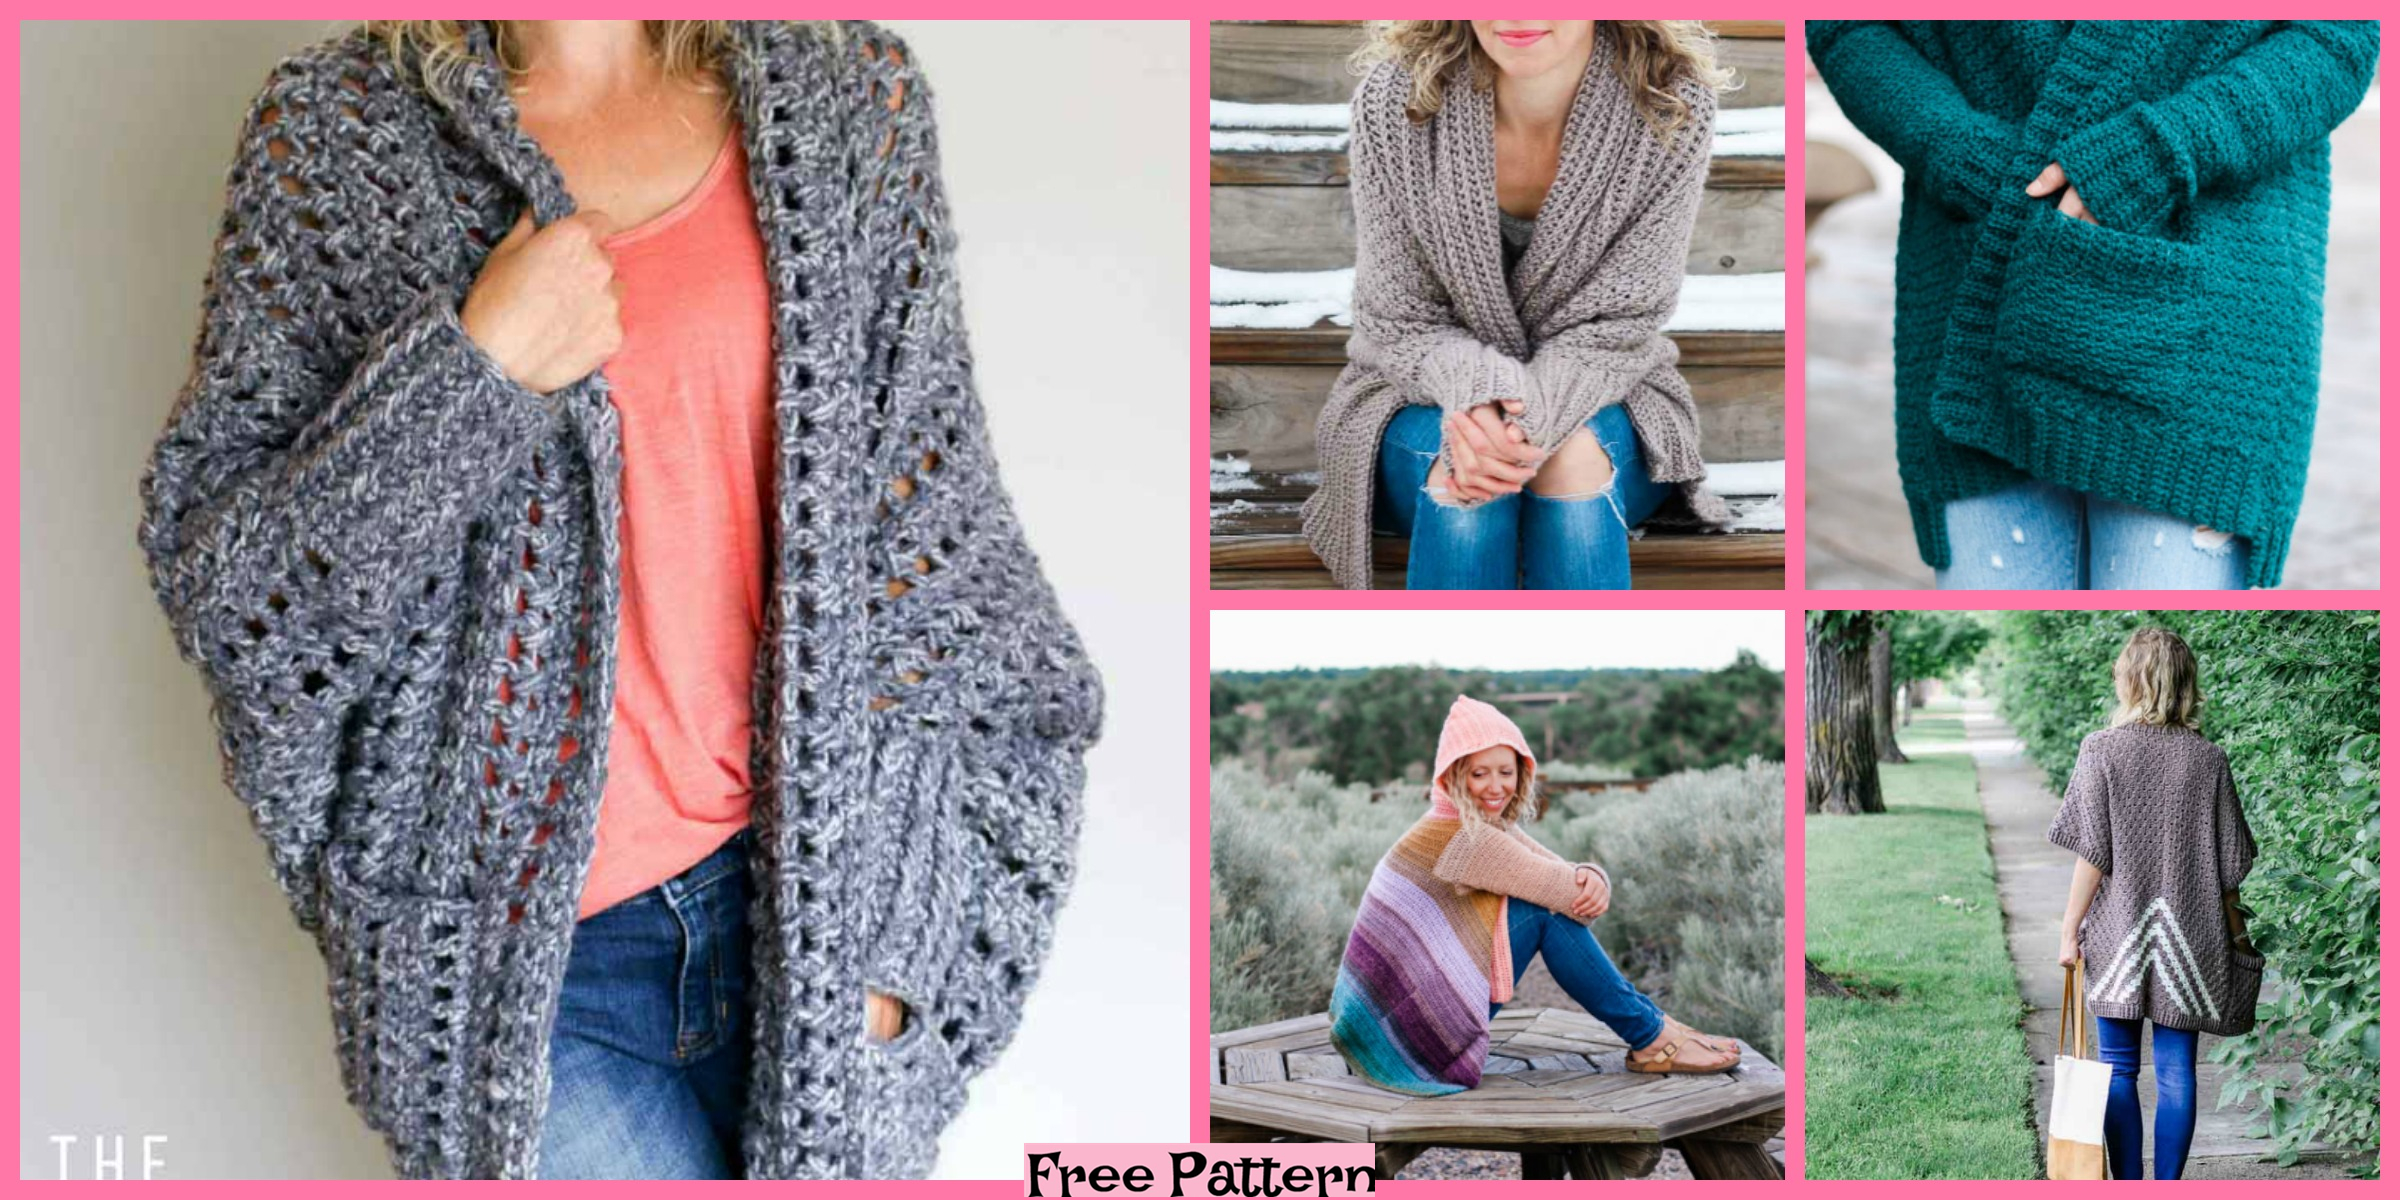 8 Stylish Crochet Cardigan Free Patterns